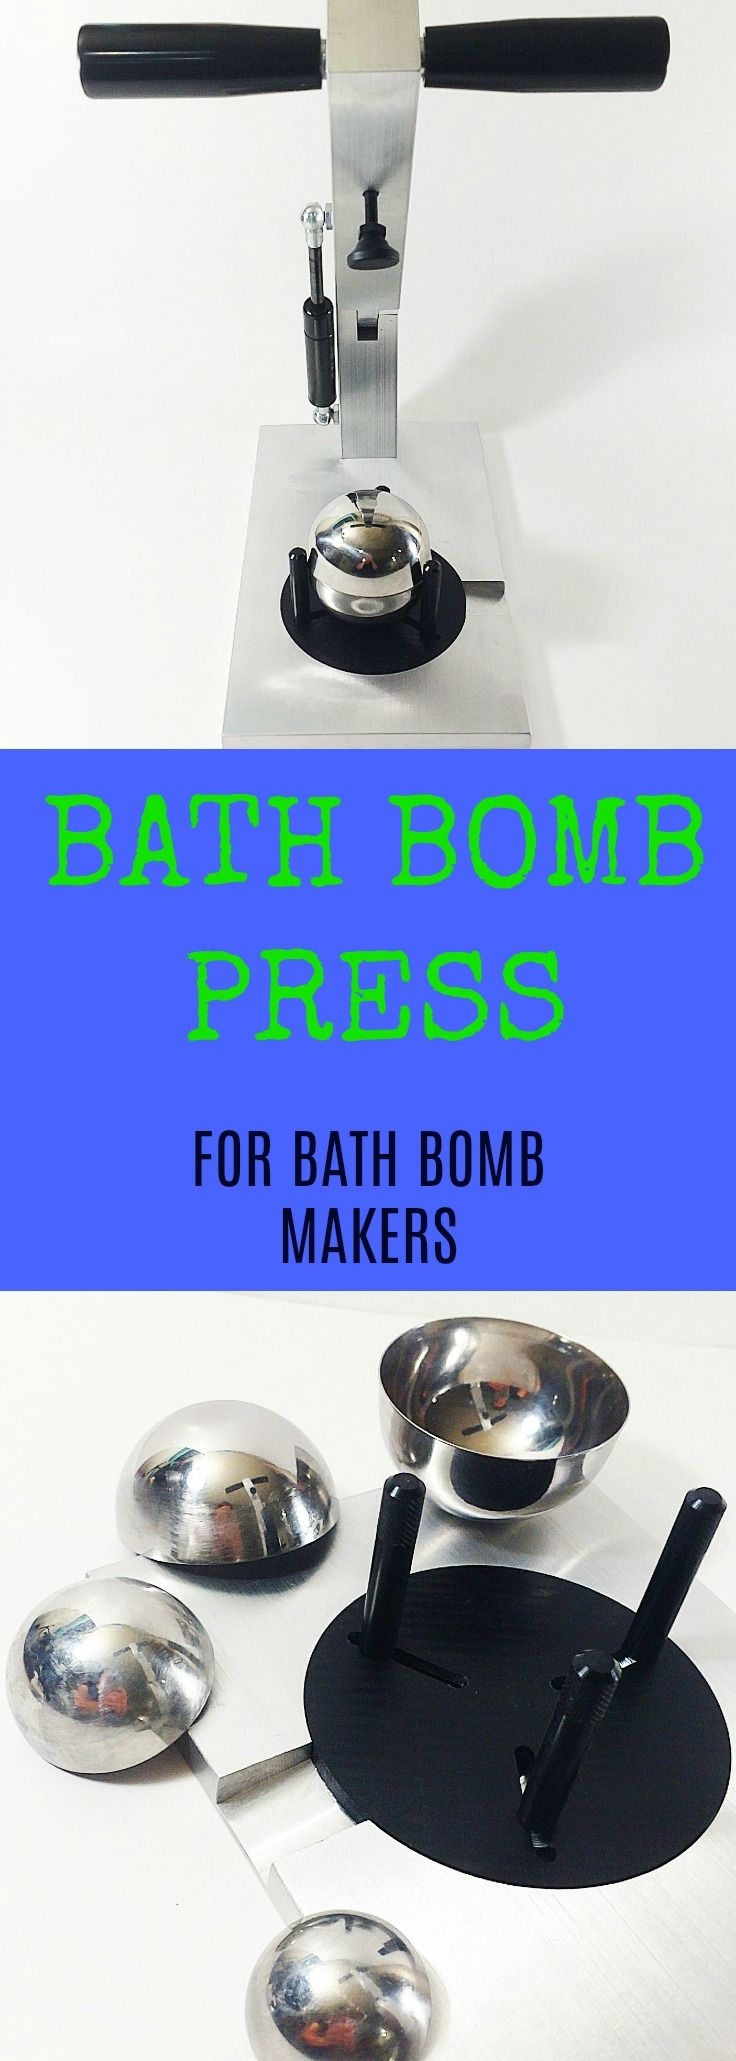 We could not find a bath bomb press on the market that was